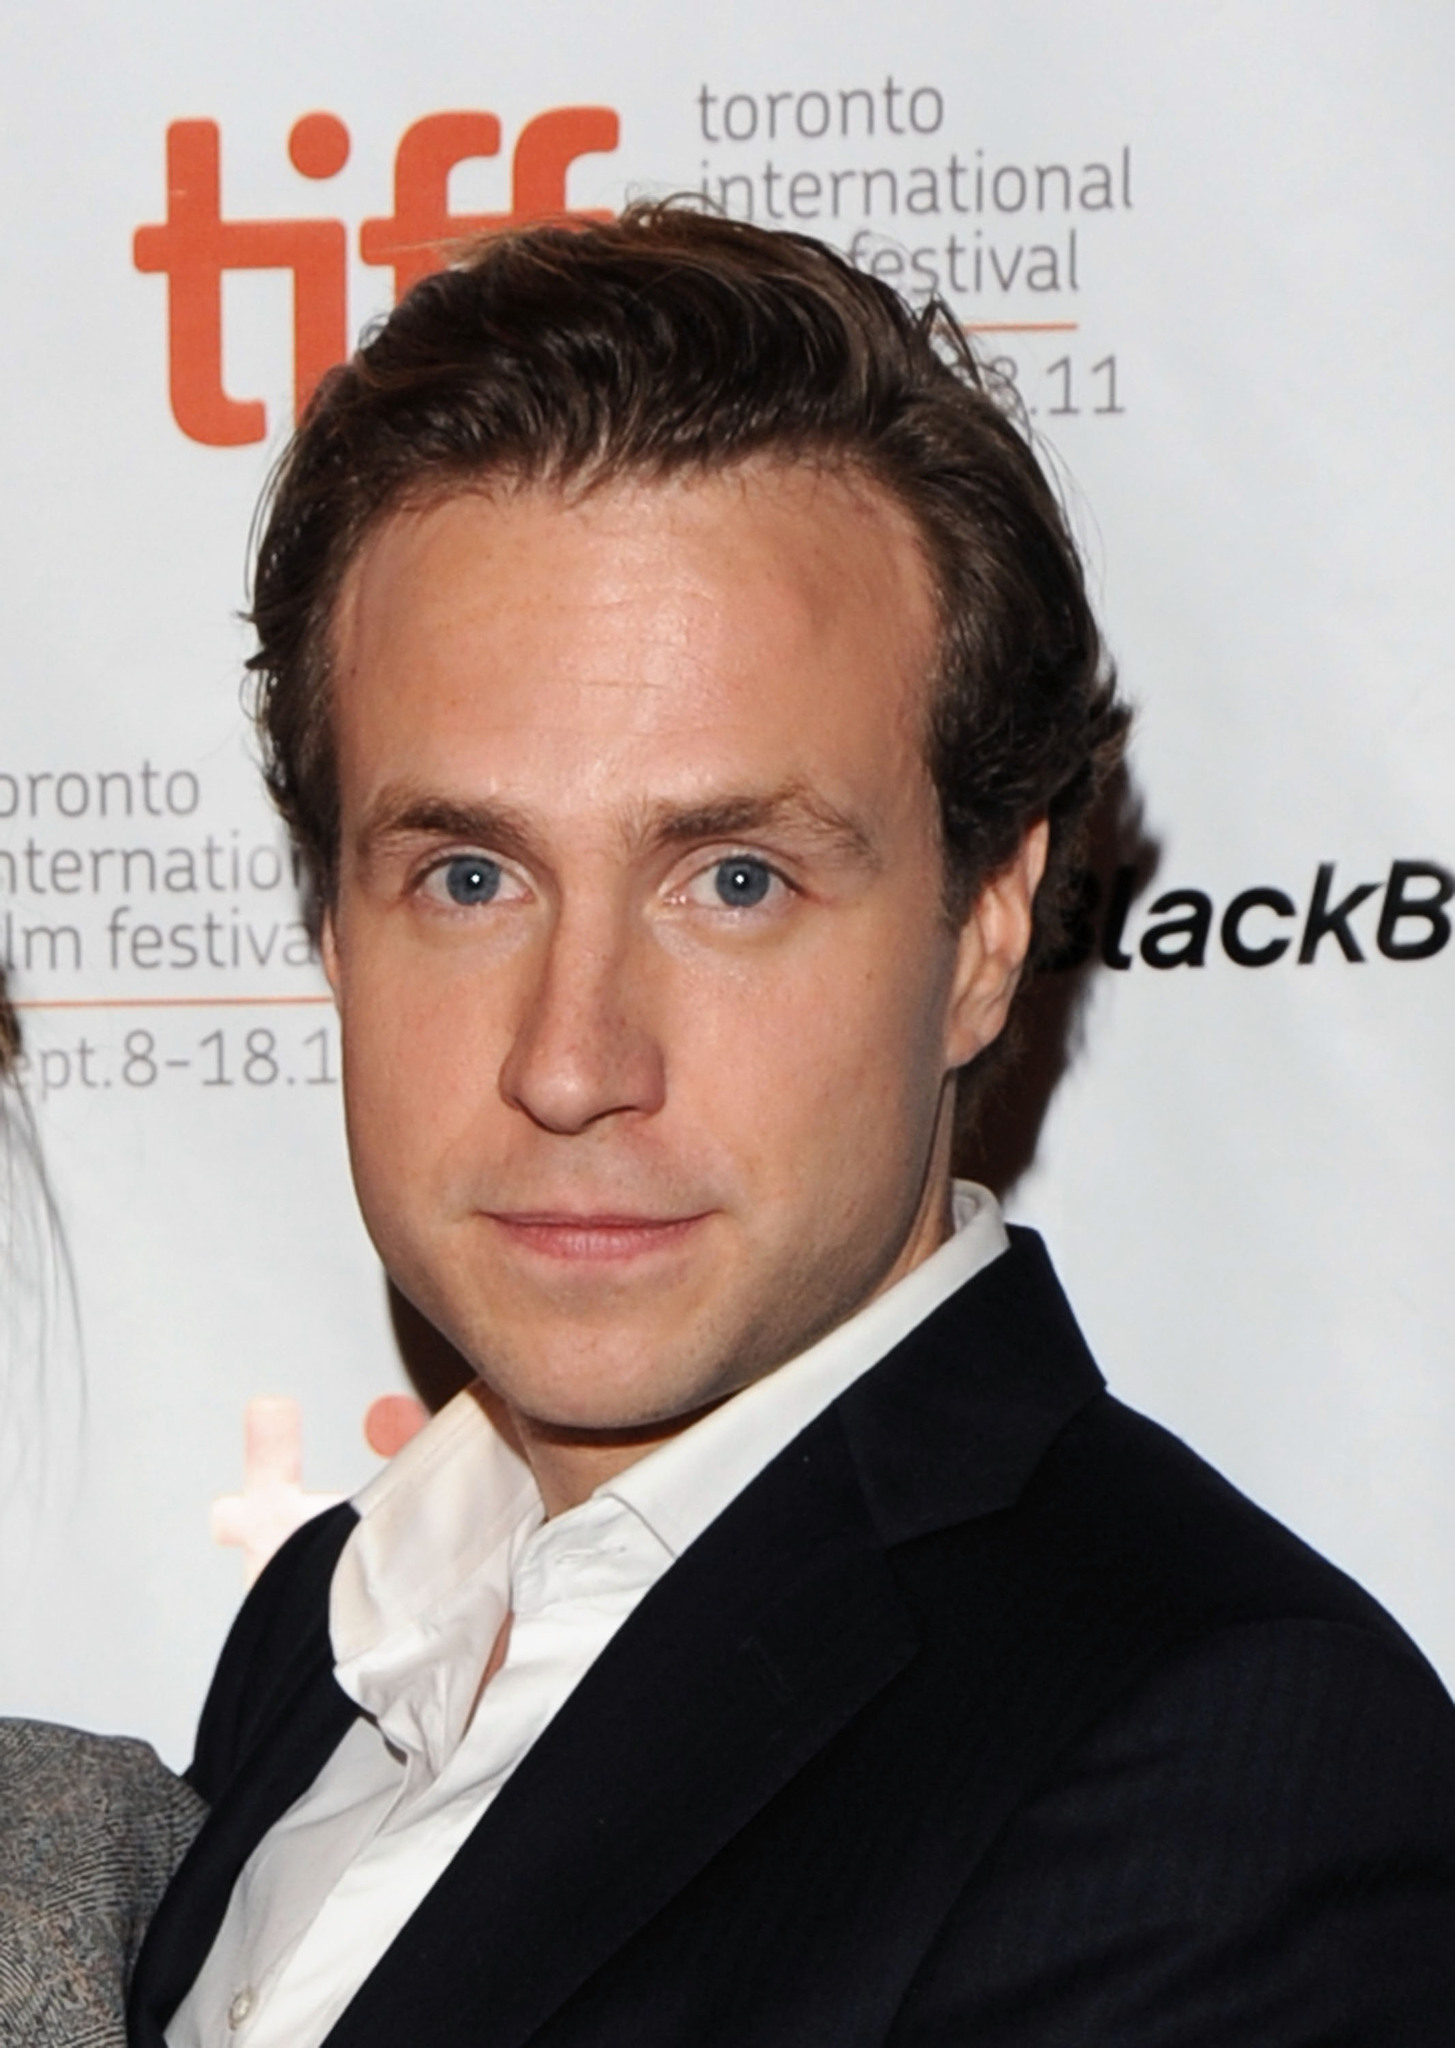 Rafe Spall (born 1983) nude photos 2019